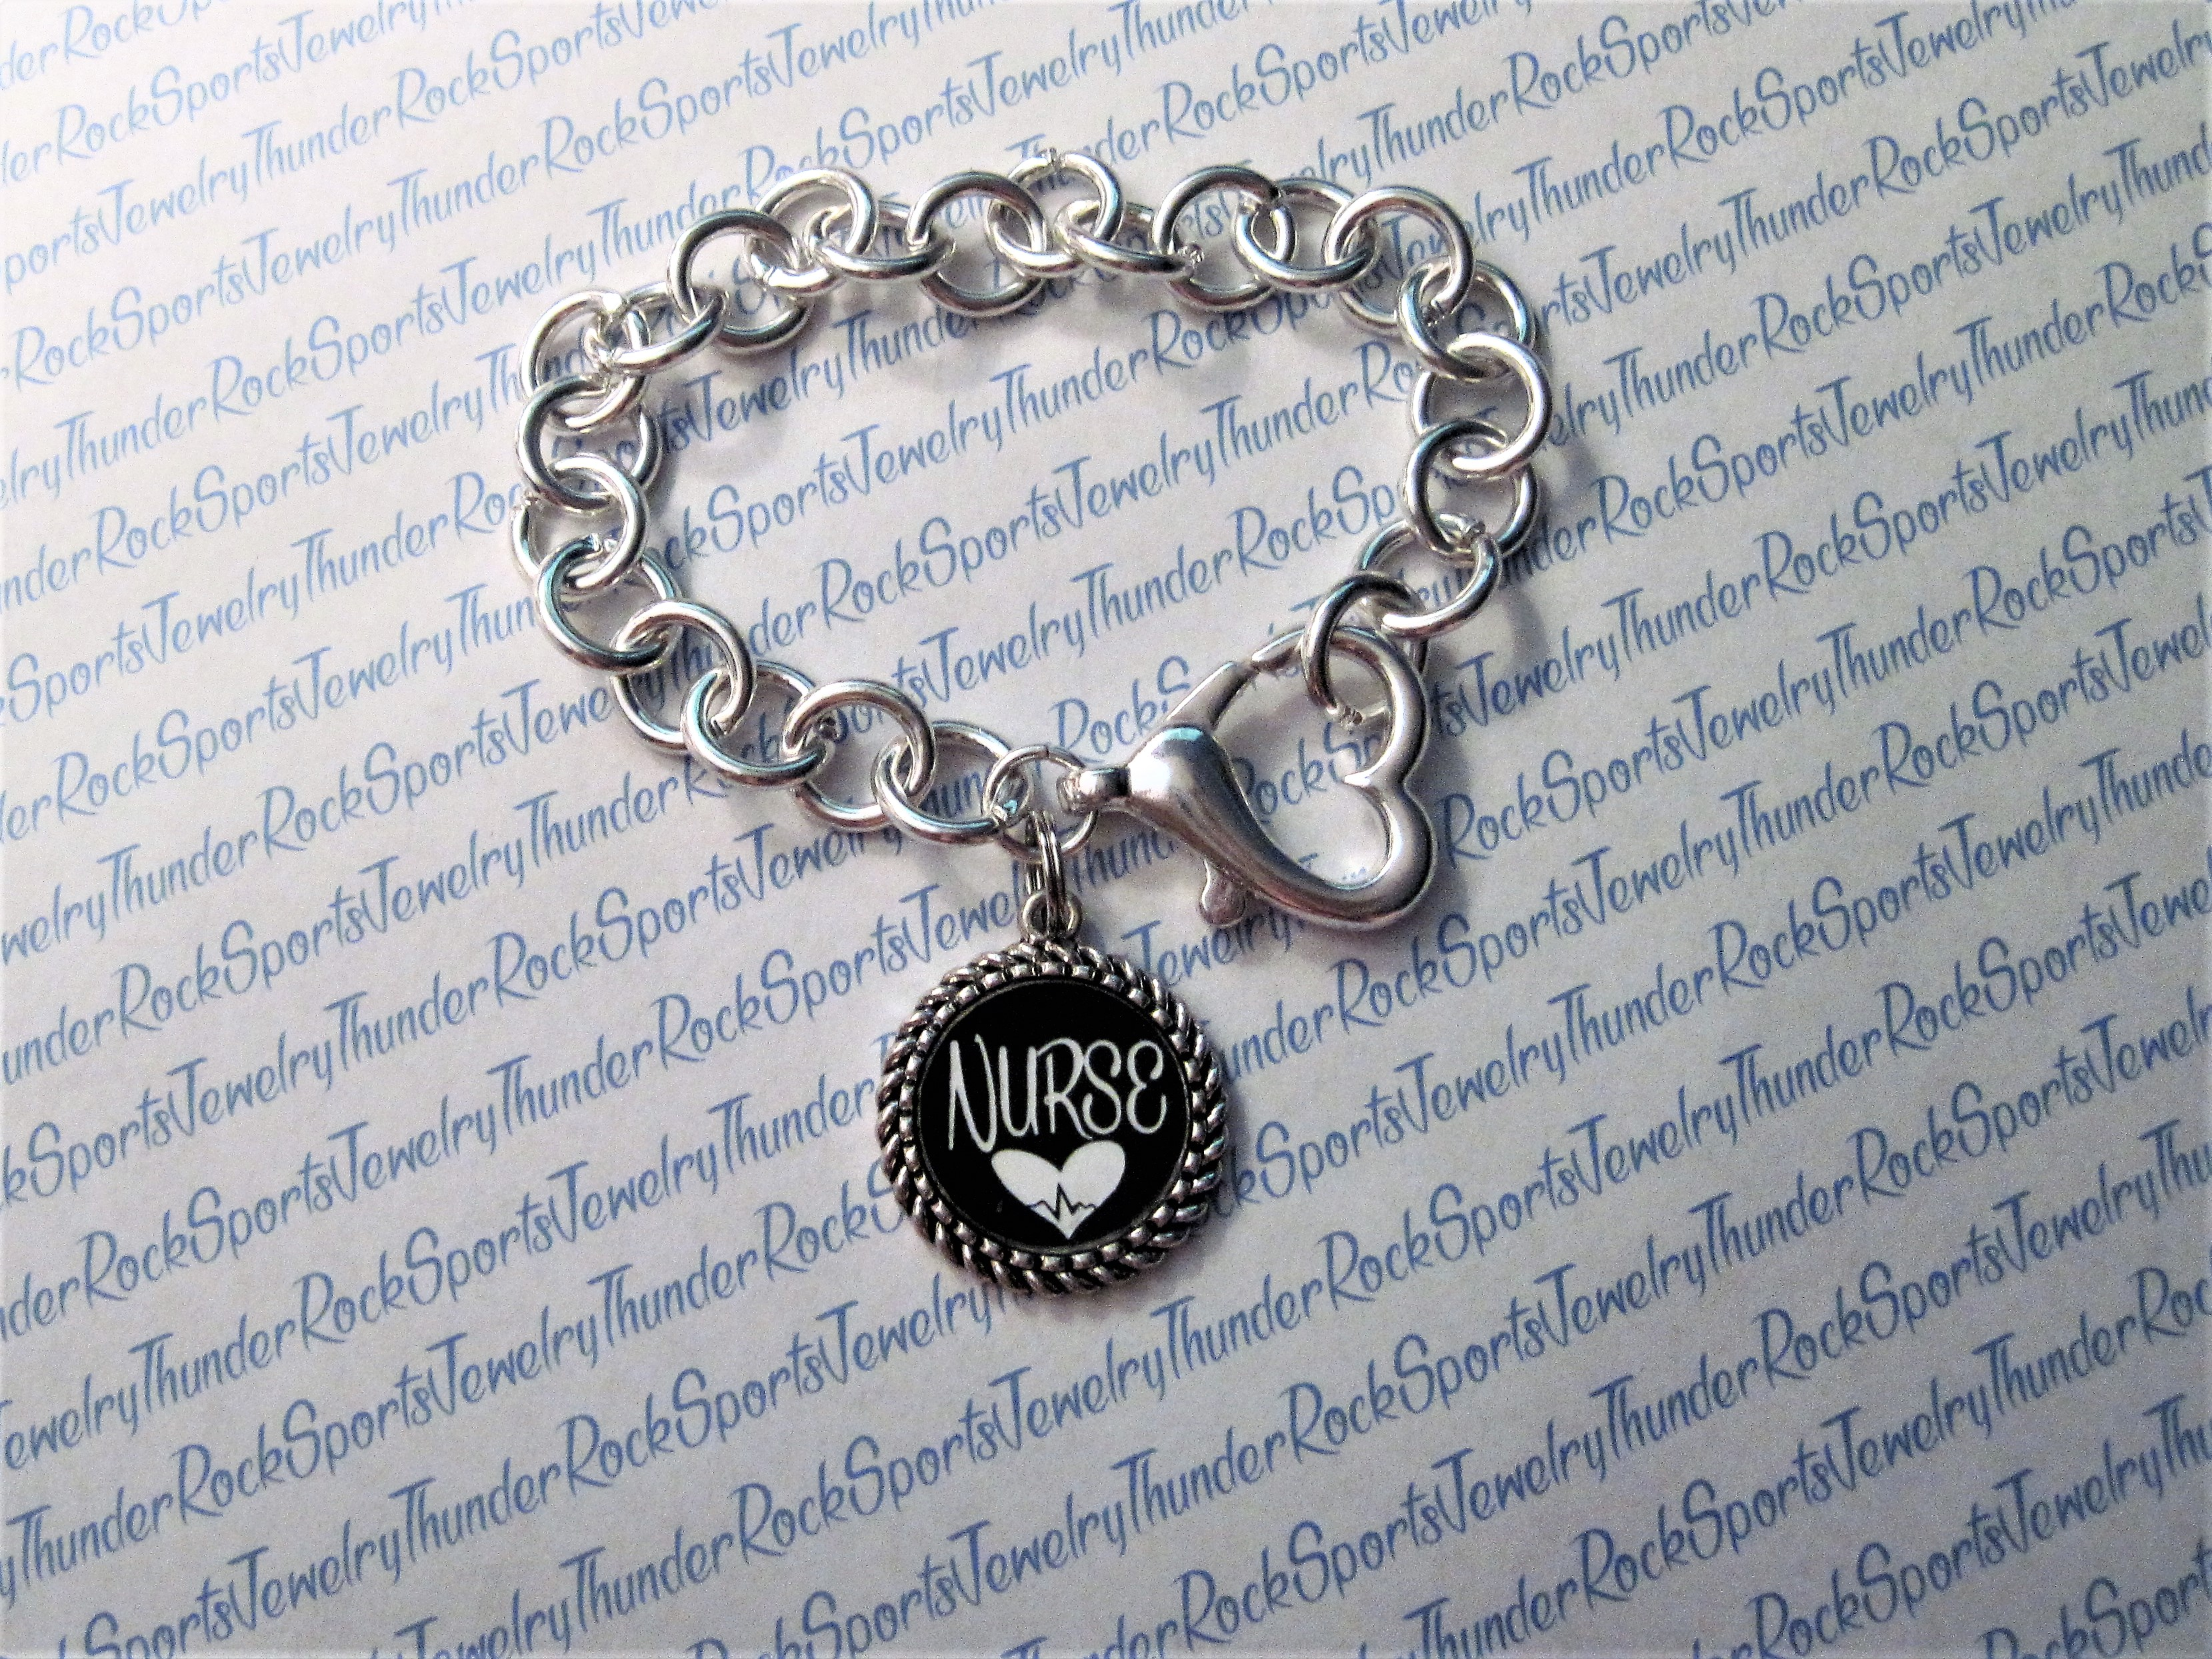 Personalized Silver Charm Bracelet with Heart Clasp